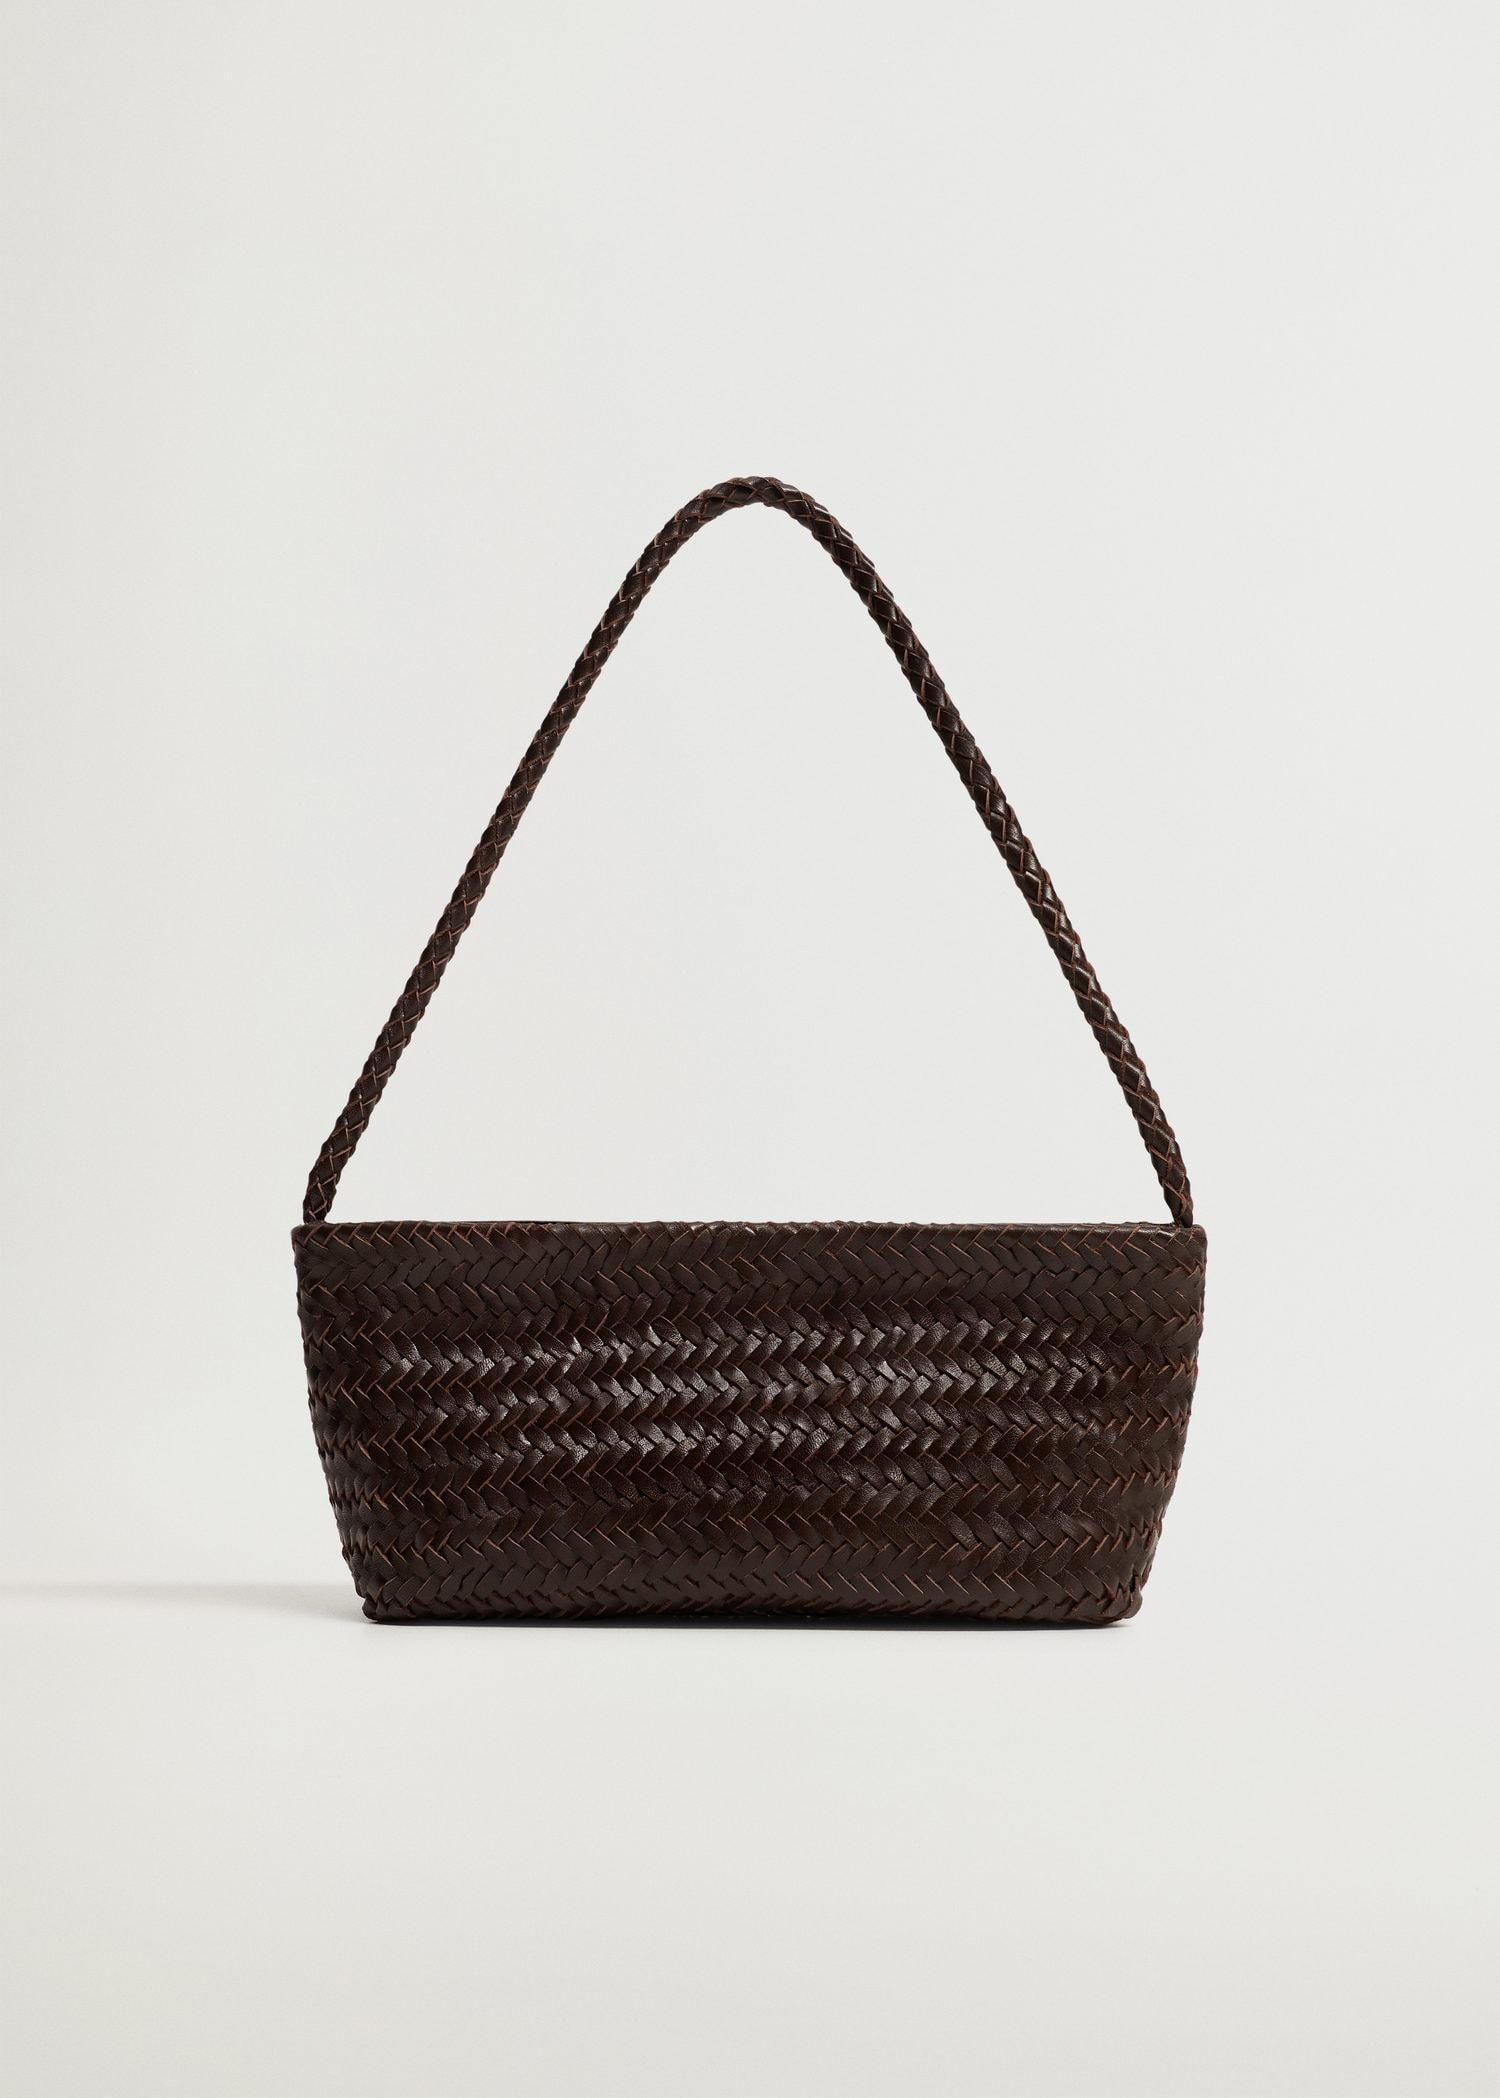 Braided leather baguette bag